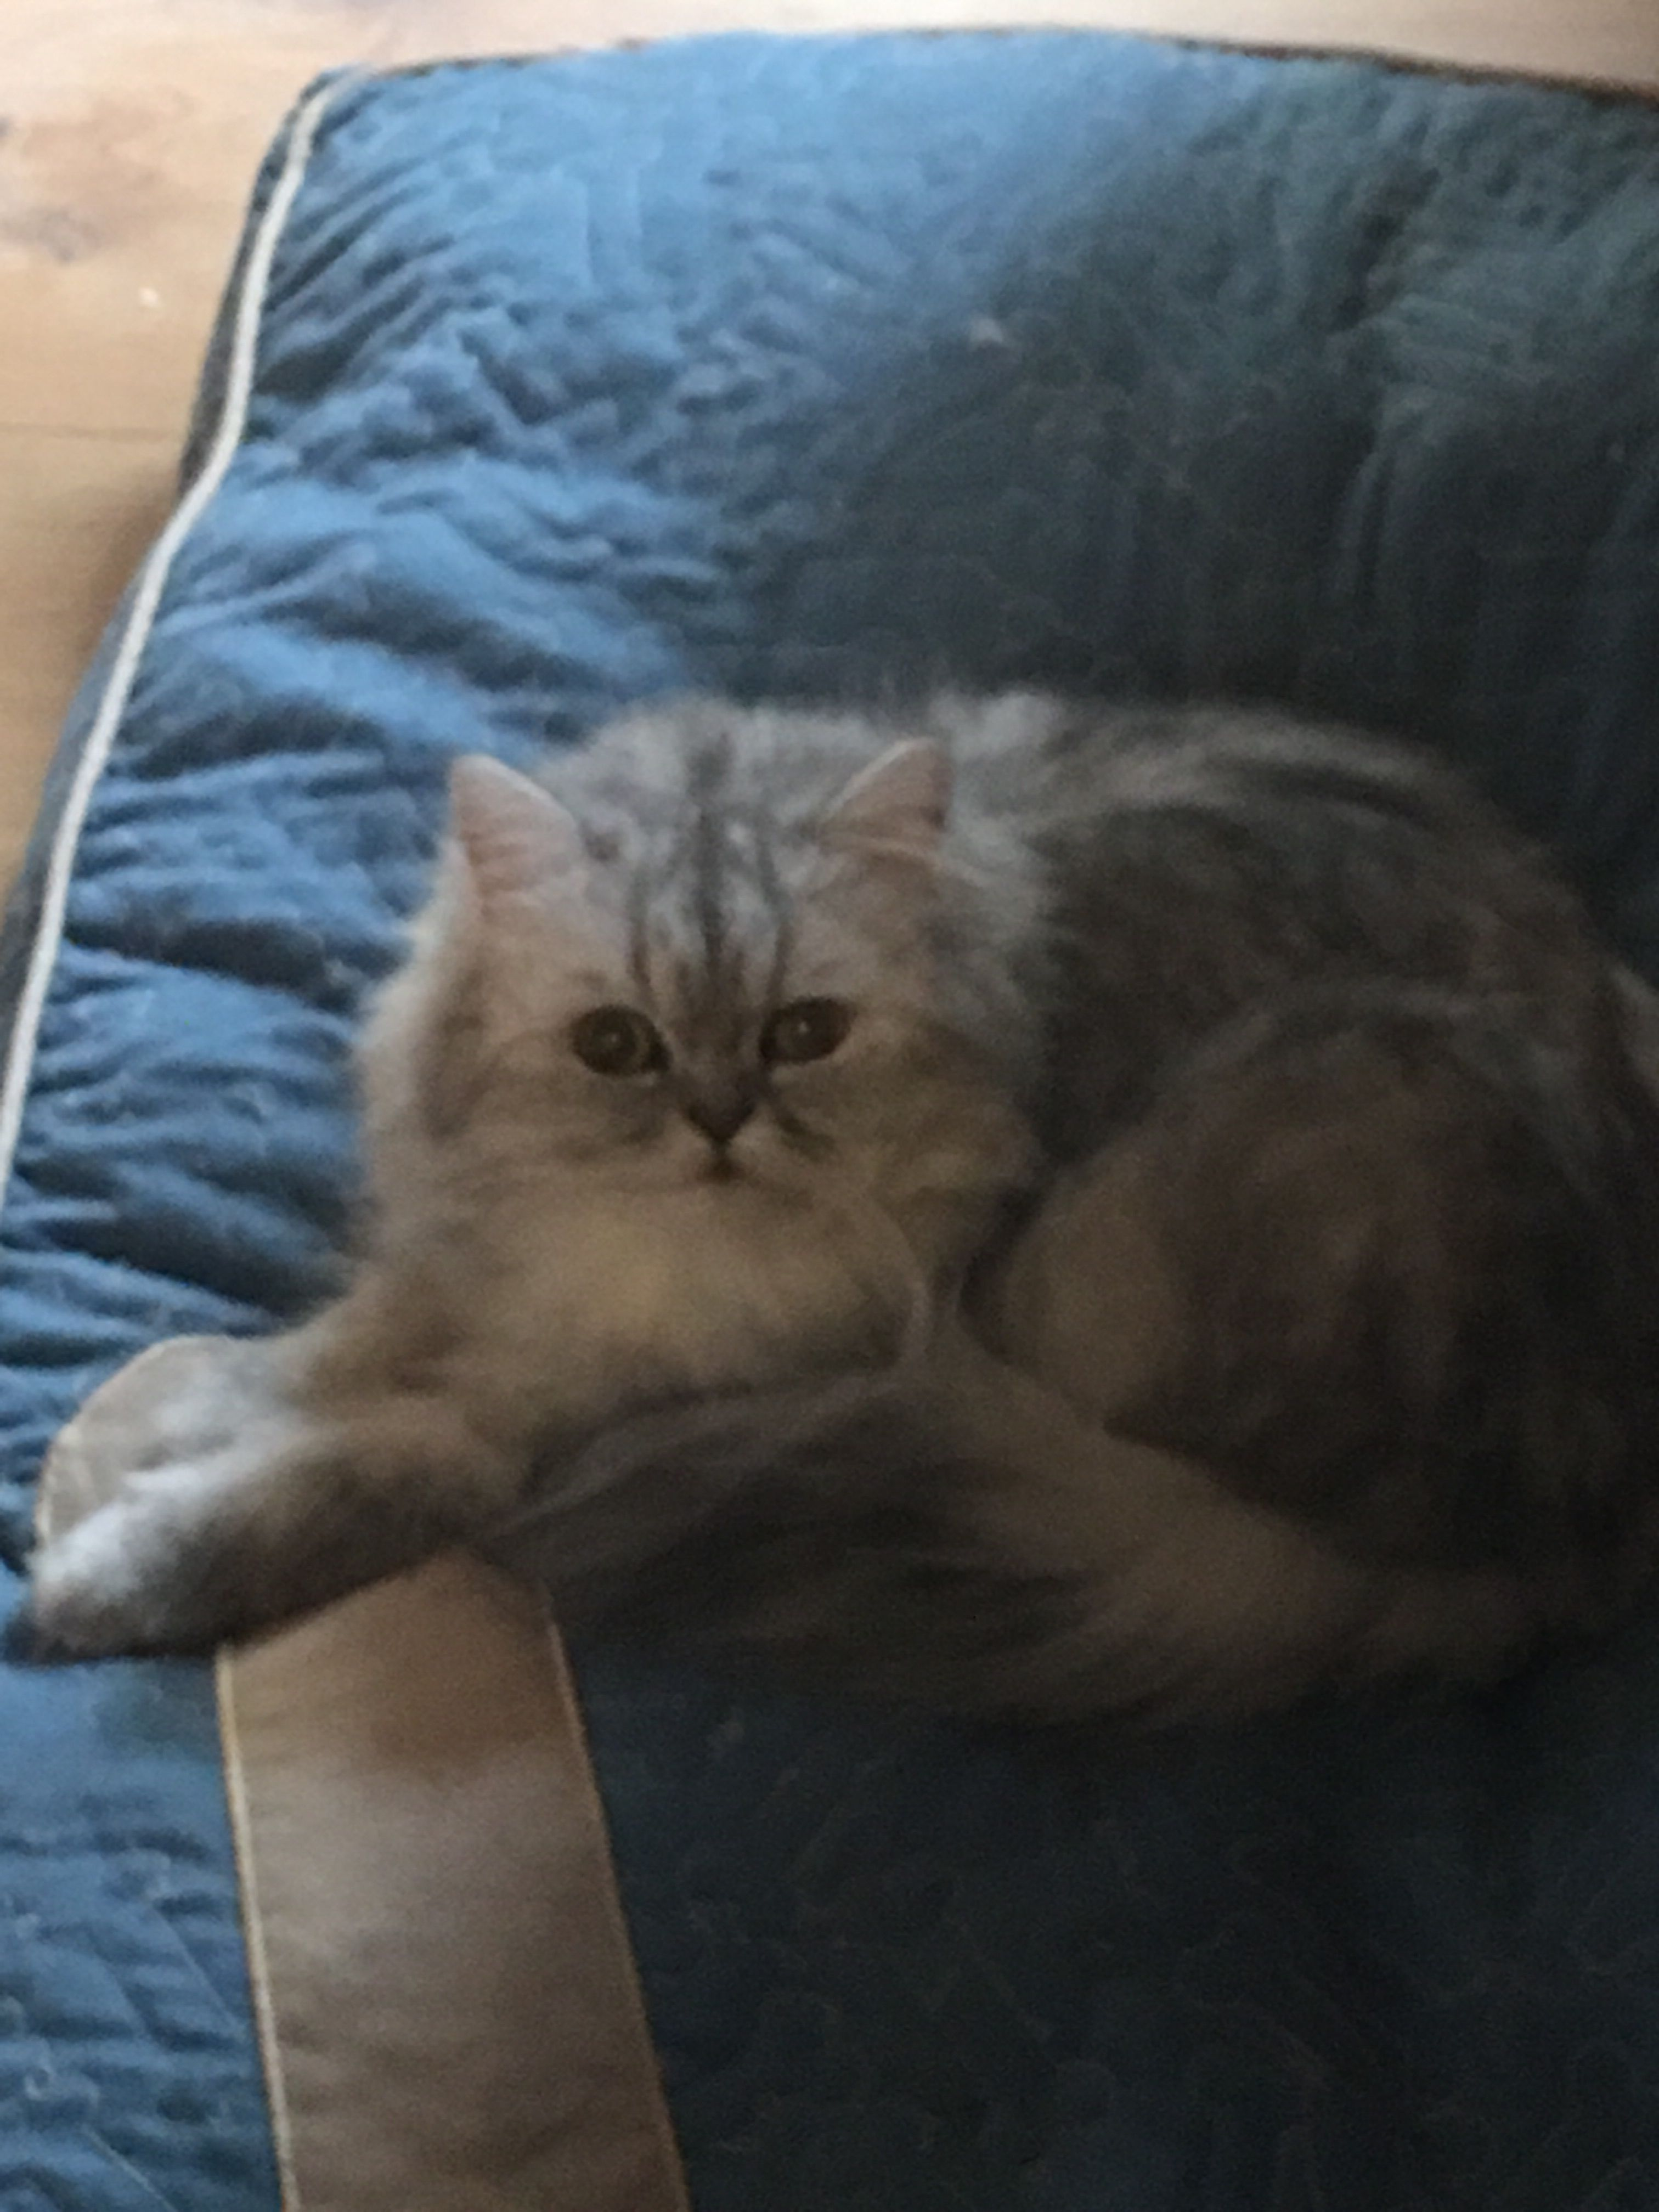 This Is London A Young And Quiet Cat Who Has Had 2 Litters Of Kittens Leading Up To 11 Cats Her First Litter Is Quiet Cat Kittens Cats And Kittens